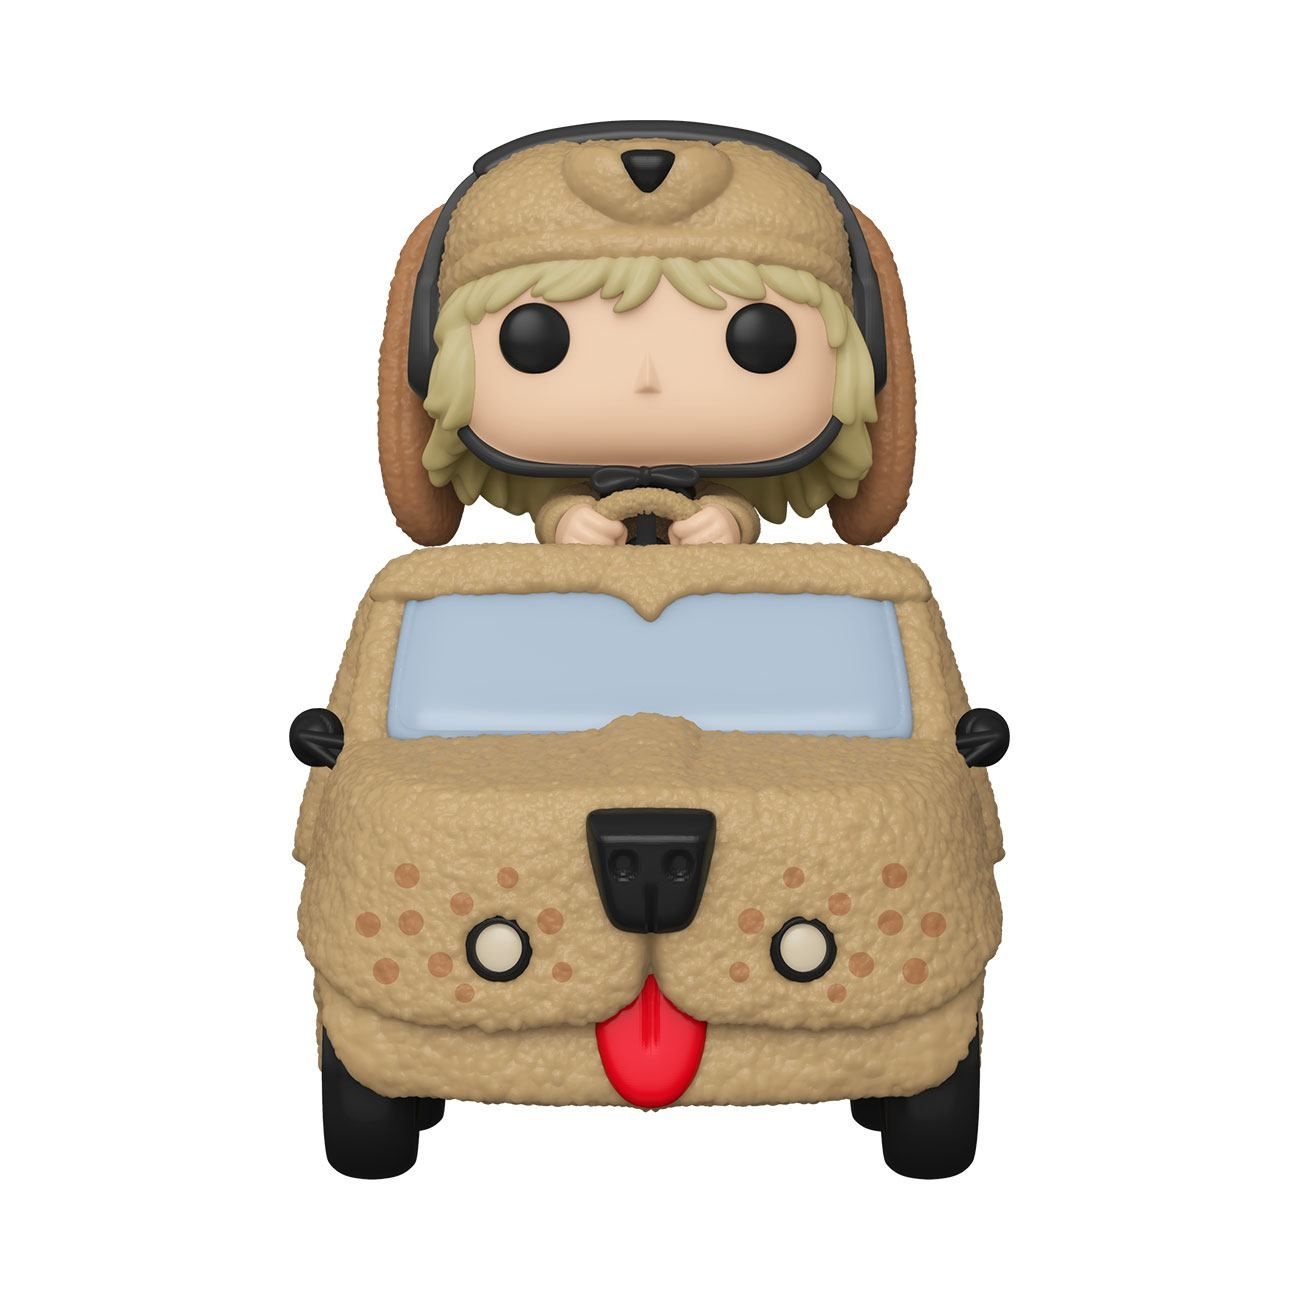 Dumb and Dumber POP! Rides vinylová Figure Harry Dunne in Mutts Cutts Van 18 cm Funko